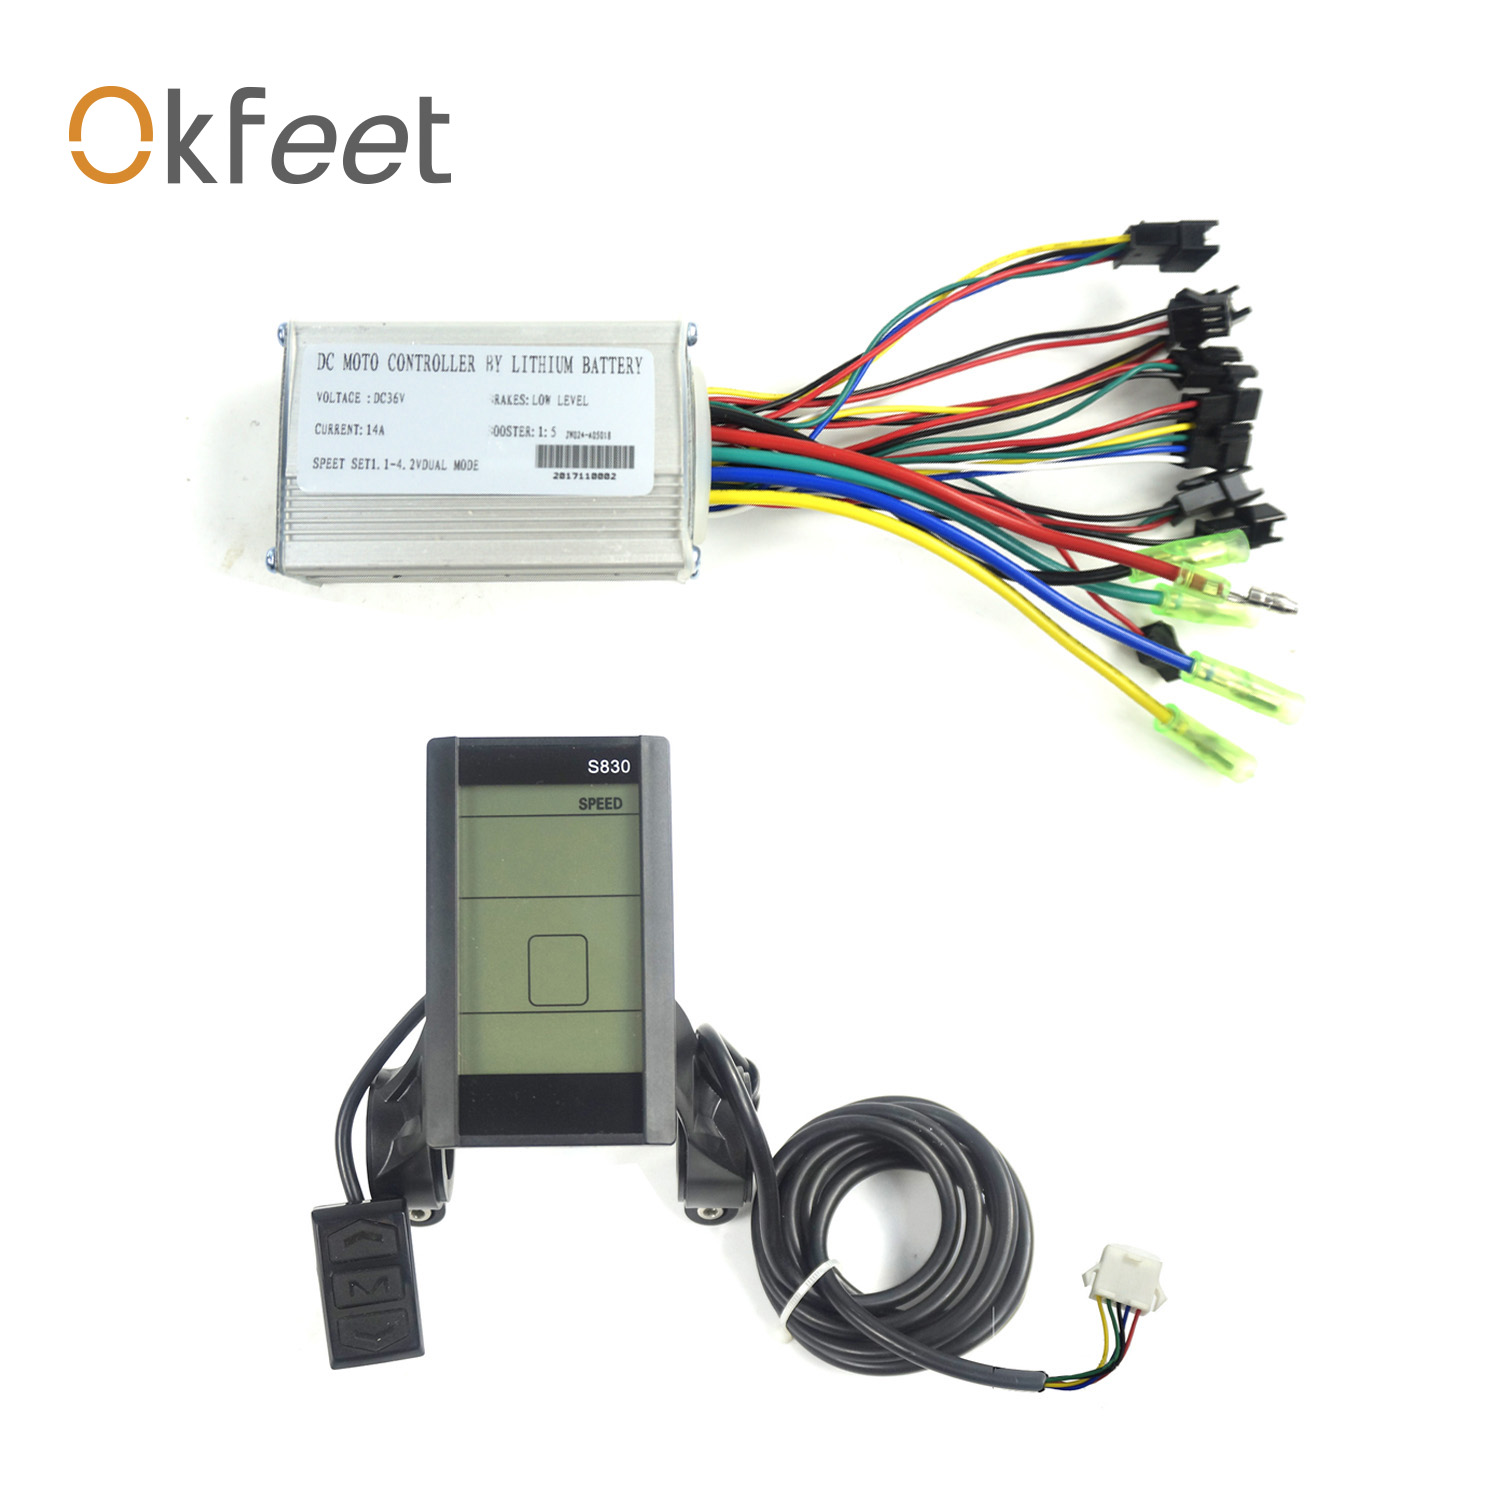 Okfeet Electric Bicycle 36V DC Hall Ebrake Sensor LCD Display 14A 6 Mosfet Brushless Controller for 250W Hub Motor|Electric Bicycle Accessories| |  - title=